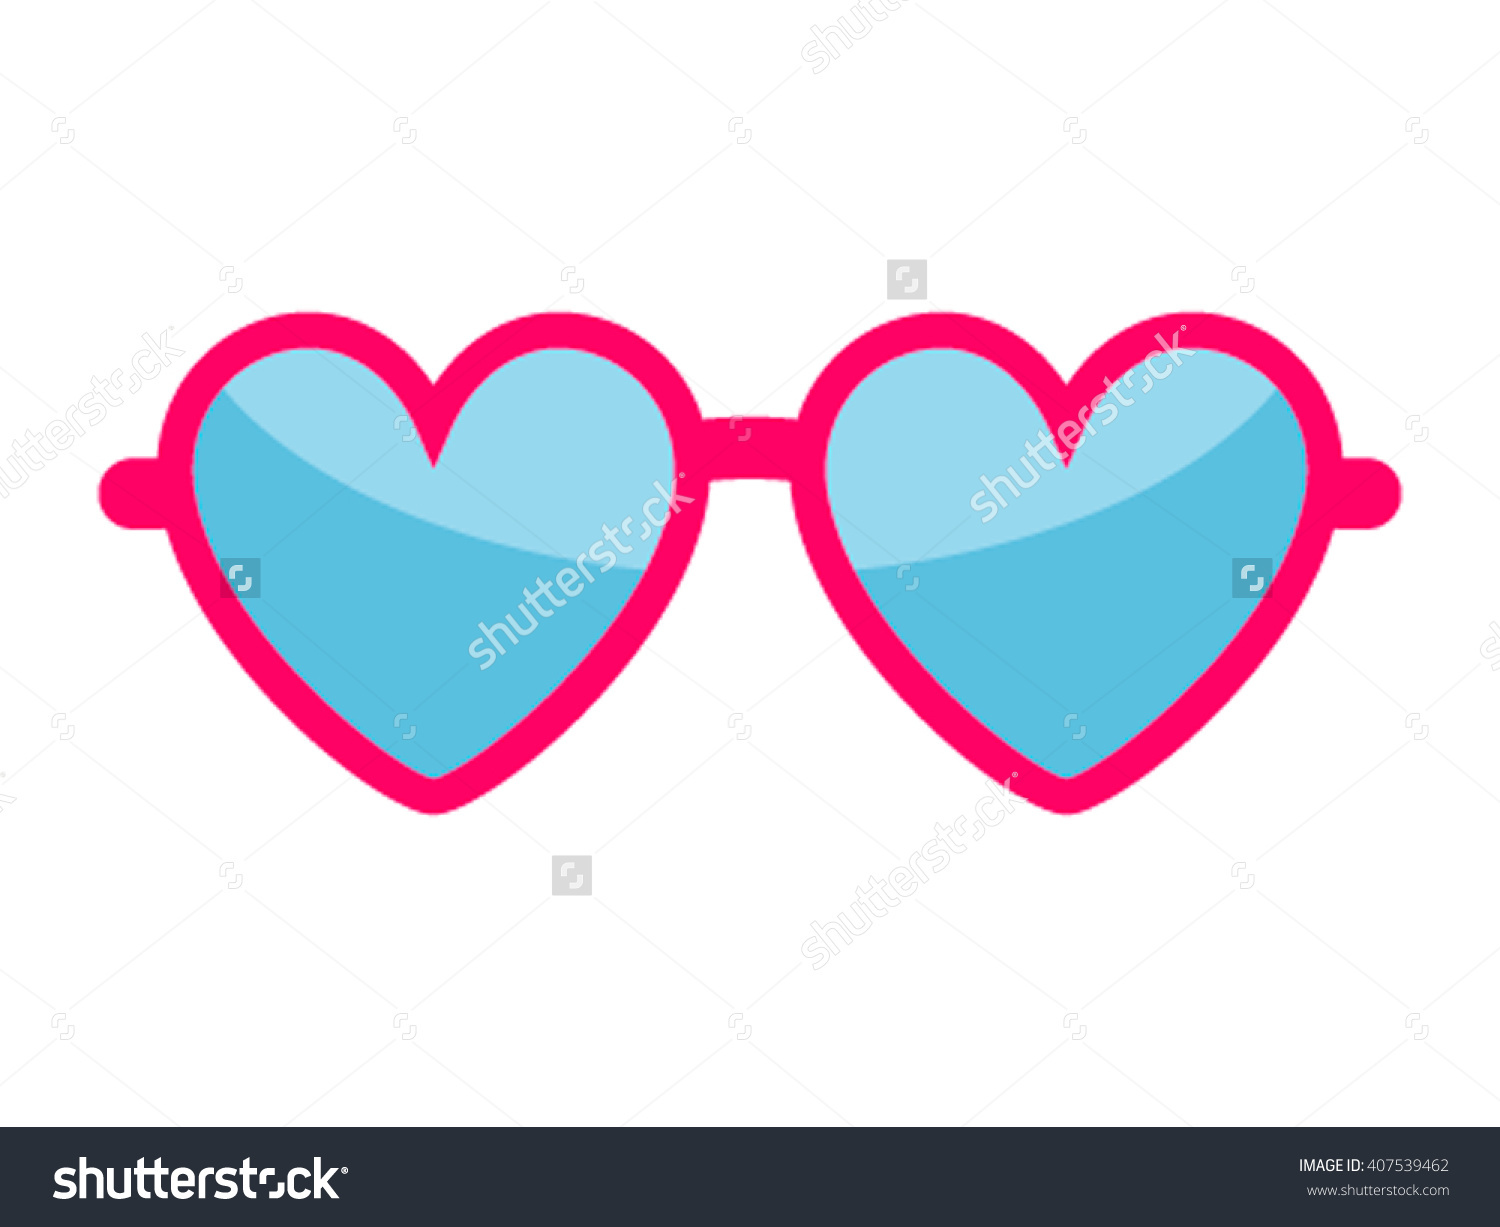 Heart sunglasses clipart 3 » Clipart Station.